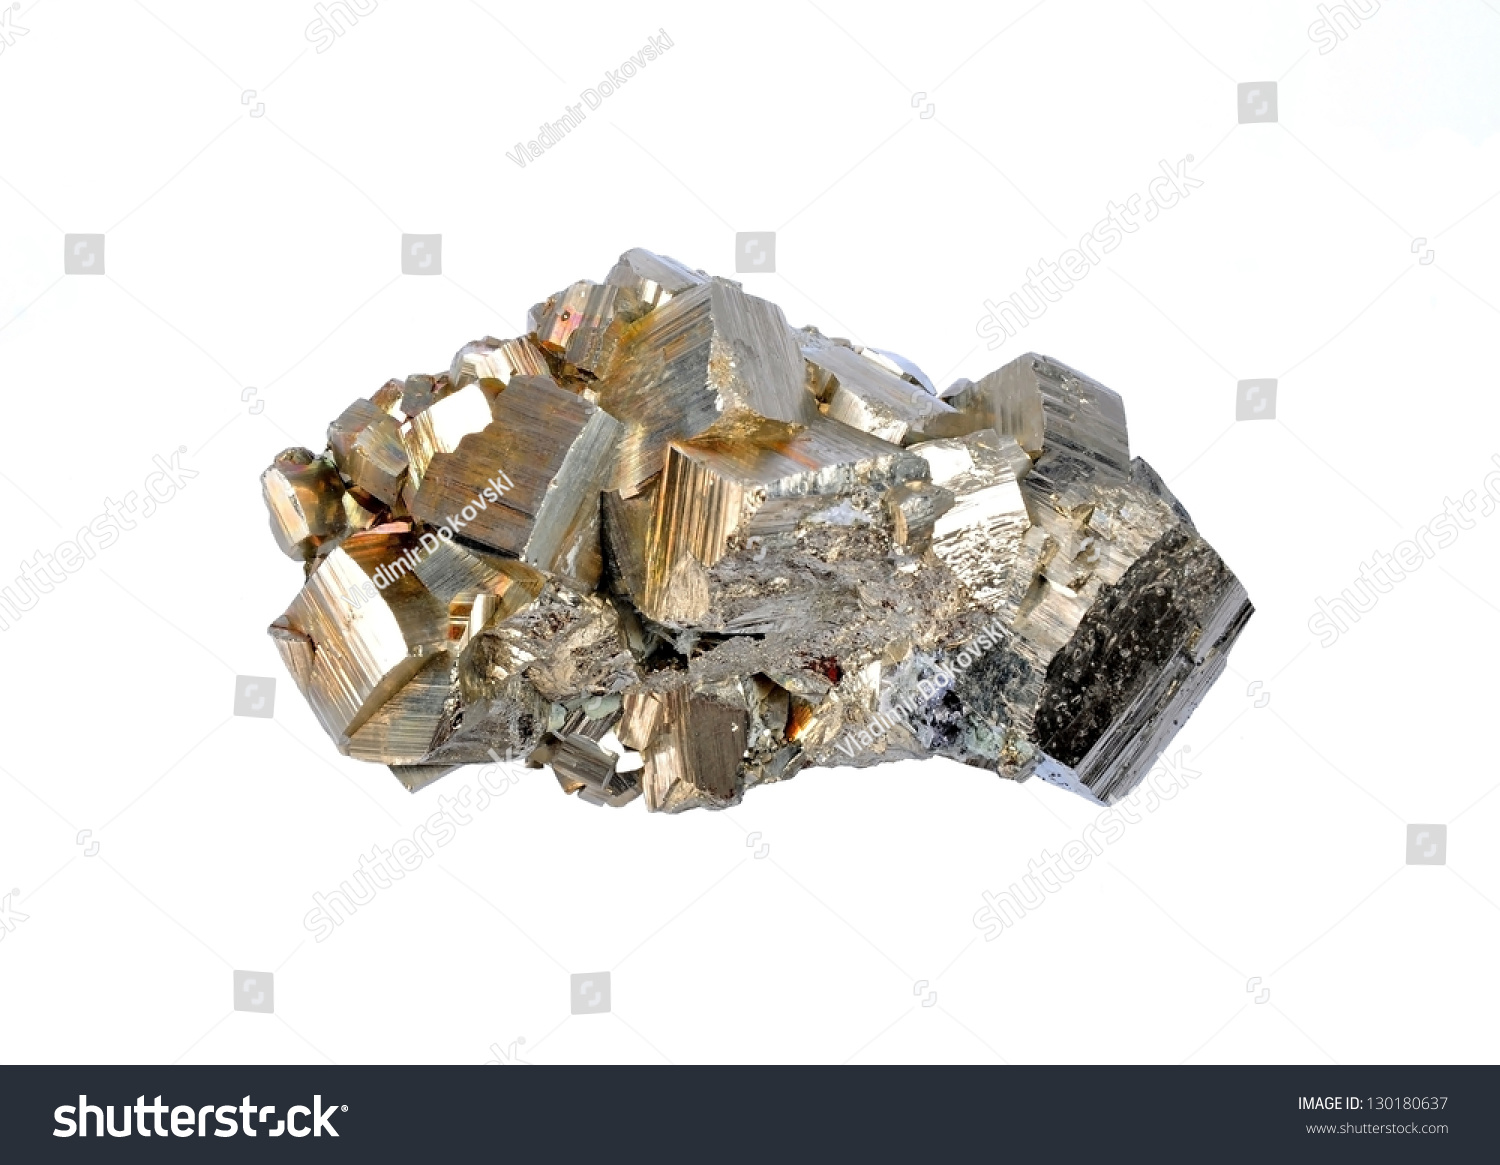 pyrites singles Single license  access to this and all other statistics on 80,000 topics from $588 / year view price details  sulfur and pyrites export volume from austria 2008-2014.